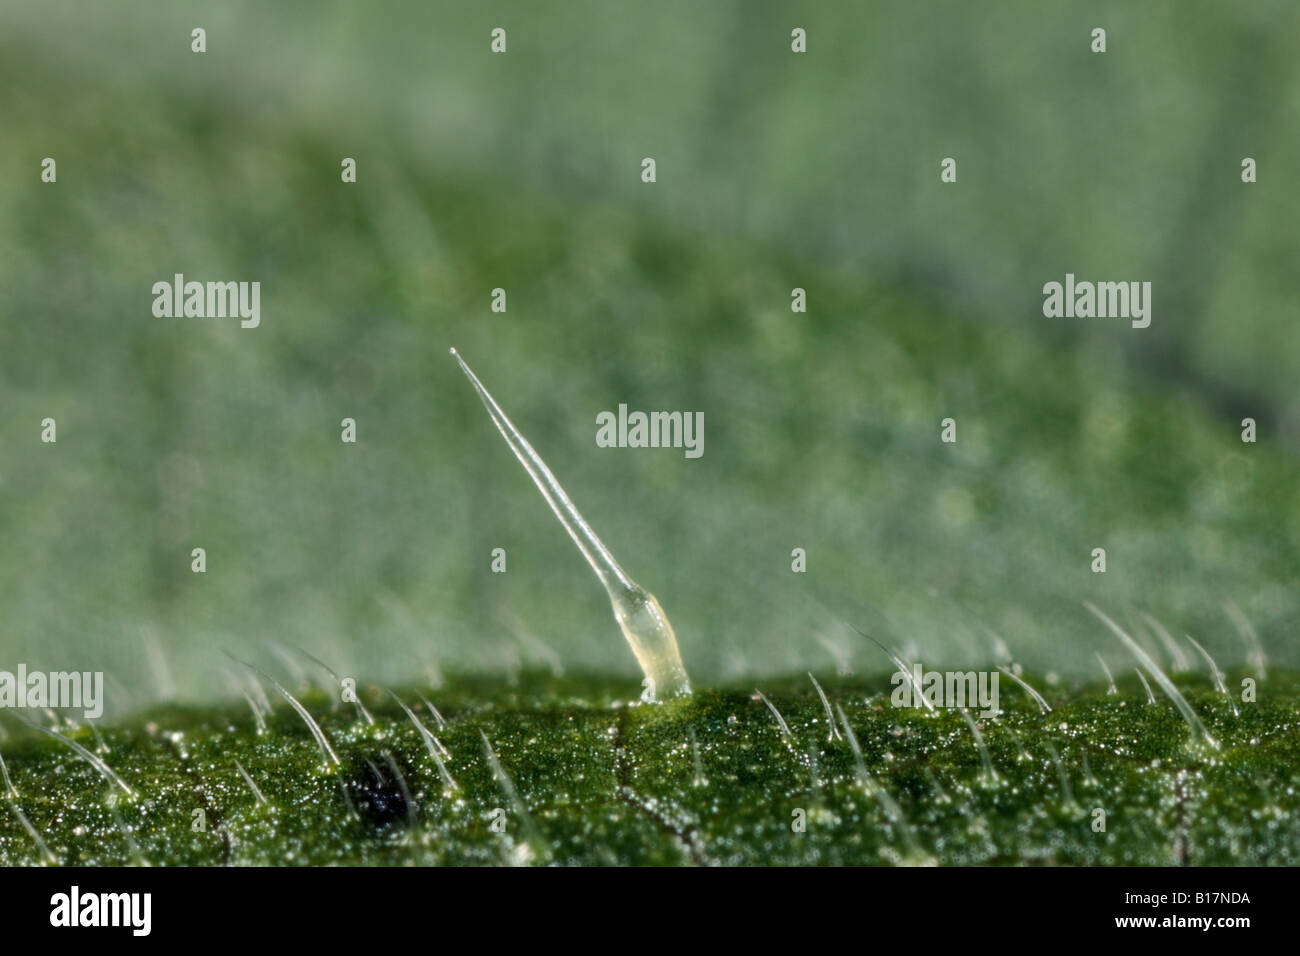 stinging nettle Urtica dioica sting close up Potton Bedfordshire - Stock Image